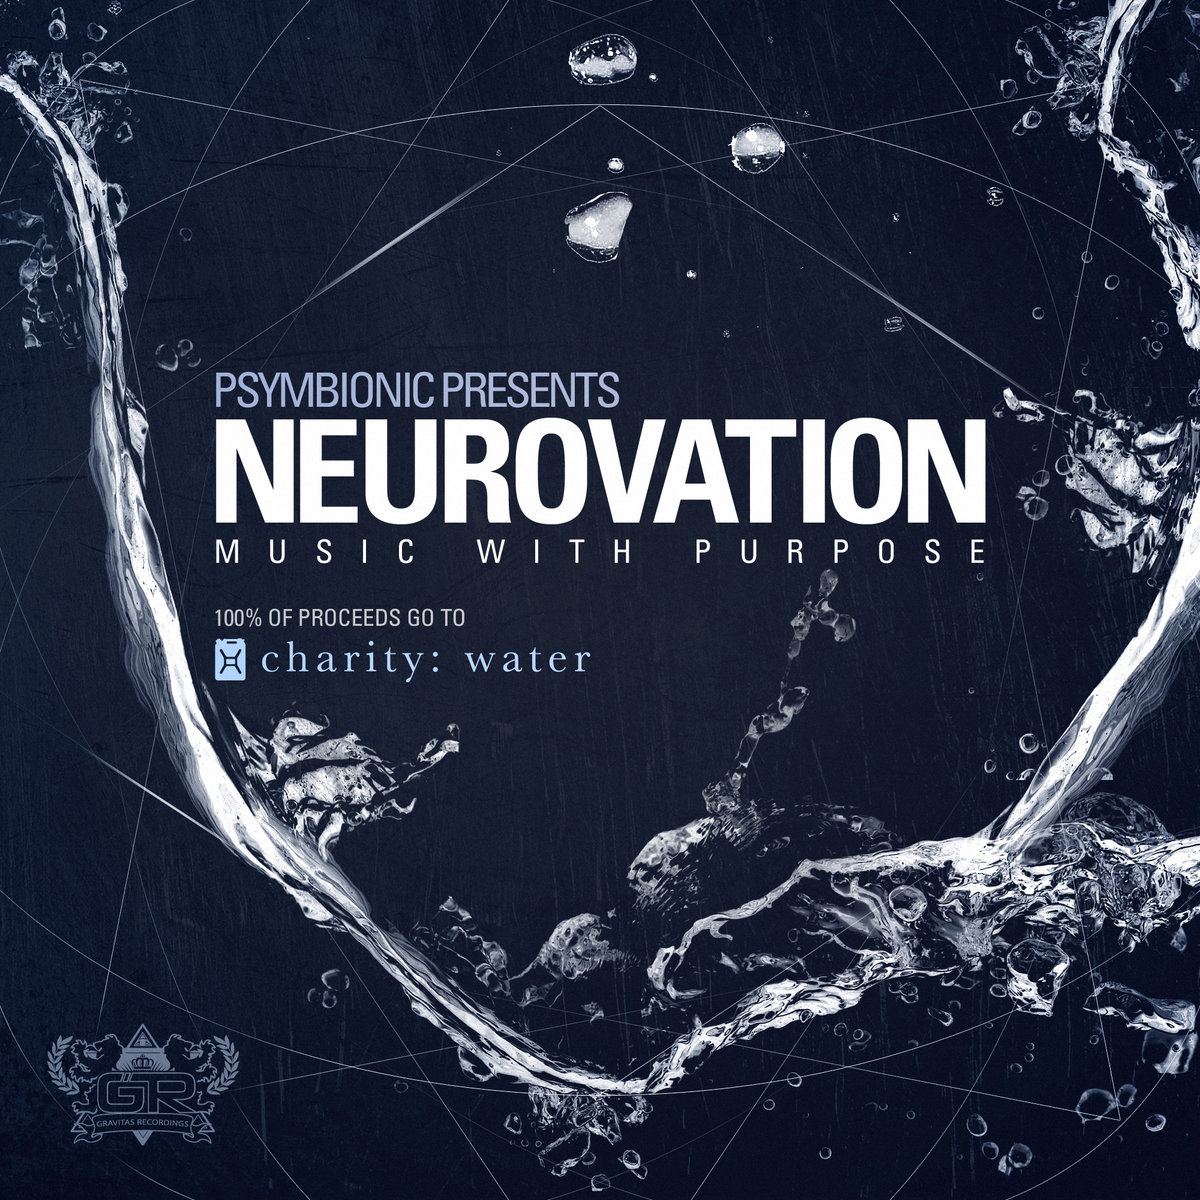 ONE4ALL & The Digital Connection - Returning to Inspiration @ 'Psymbionic Presents: Neurovation' album (cryptex, glitch hop)